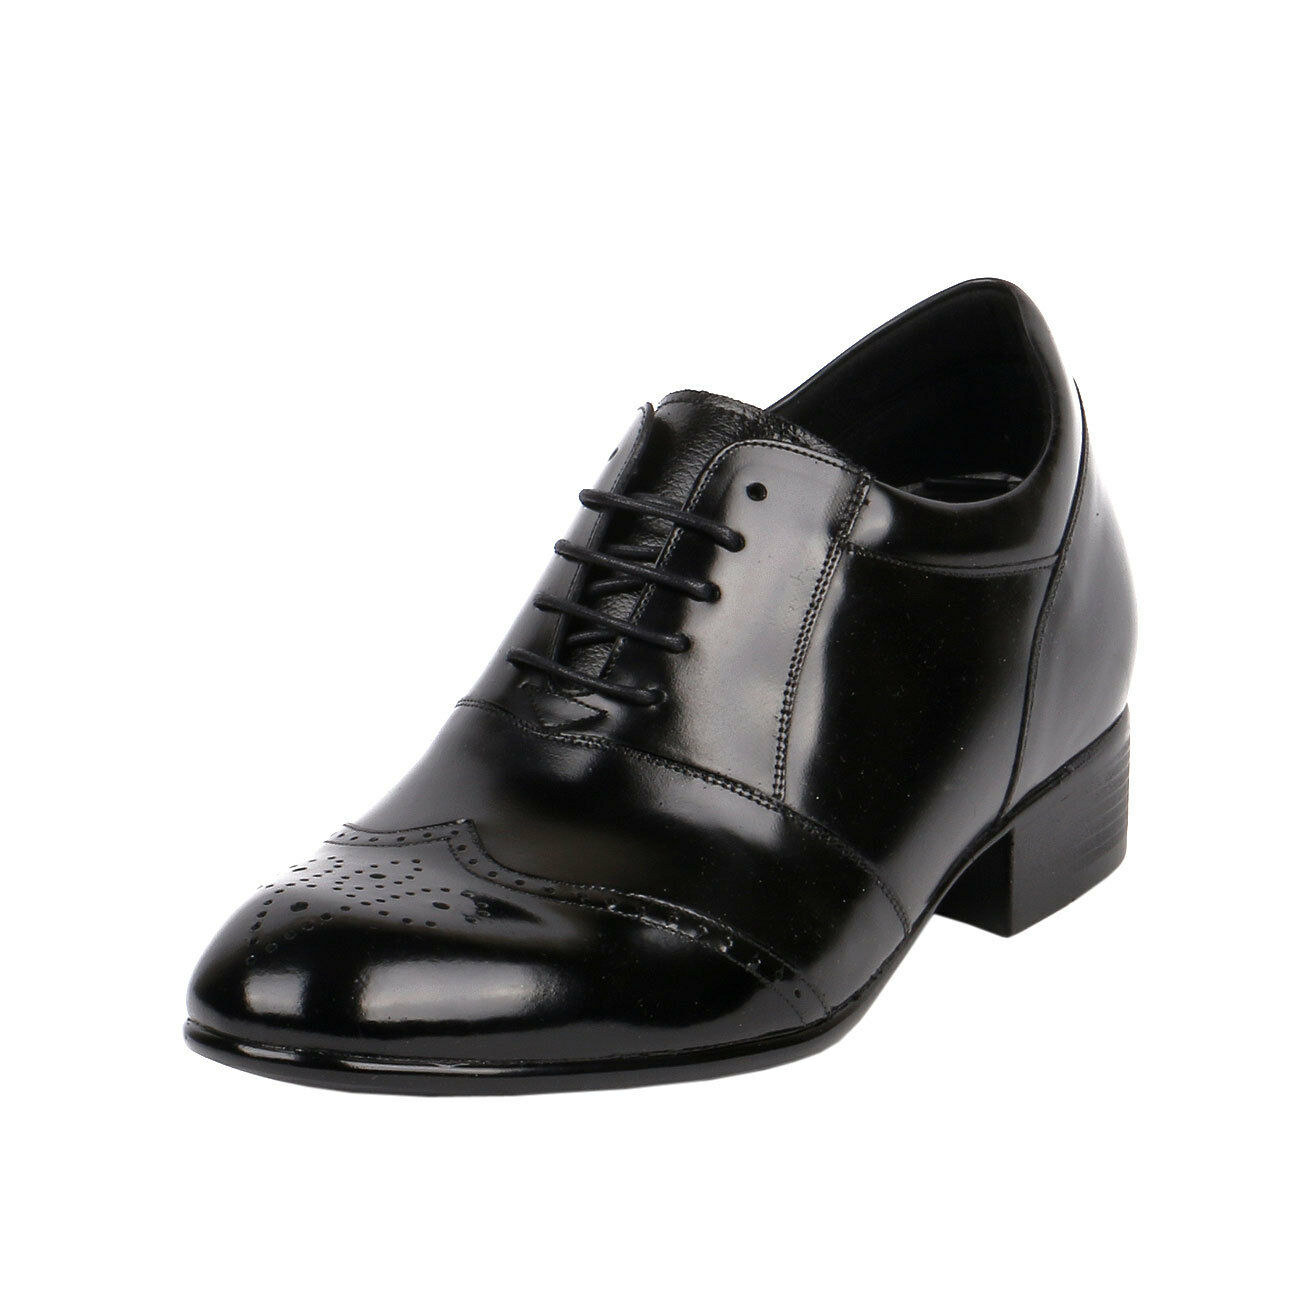 Semi Glossy Gentlemen Formal Wedding Tuxedo shoes Make 3  Extra Tall, KL609 (EE)